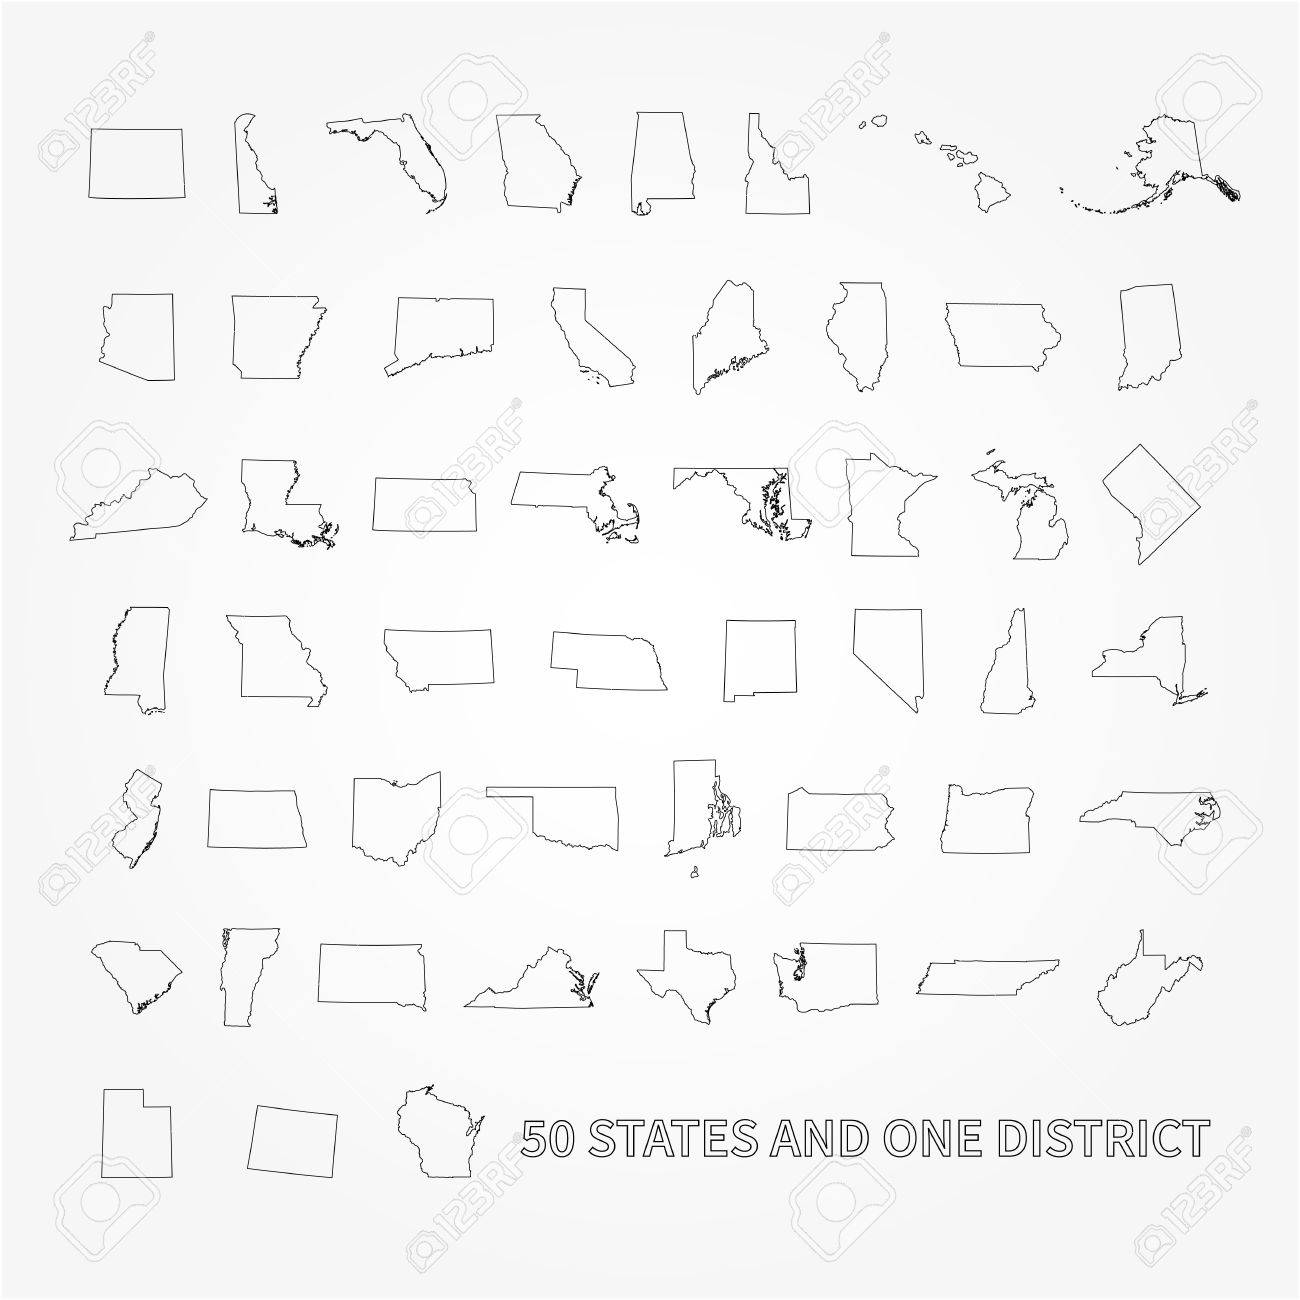 America 50 States Map.United States Of America 50 States And 1 Federal District Us